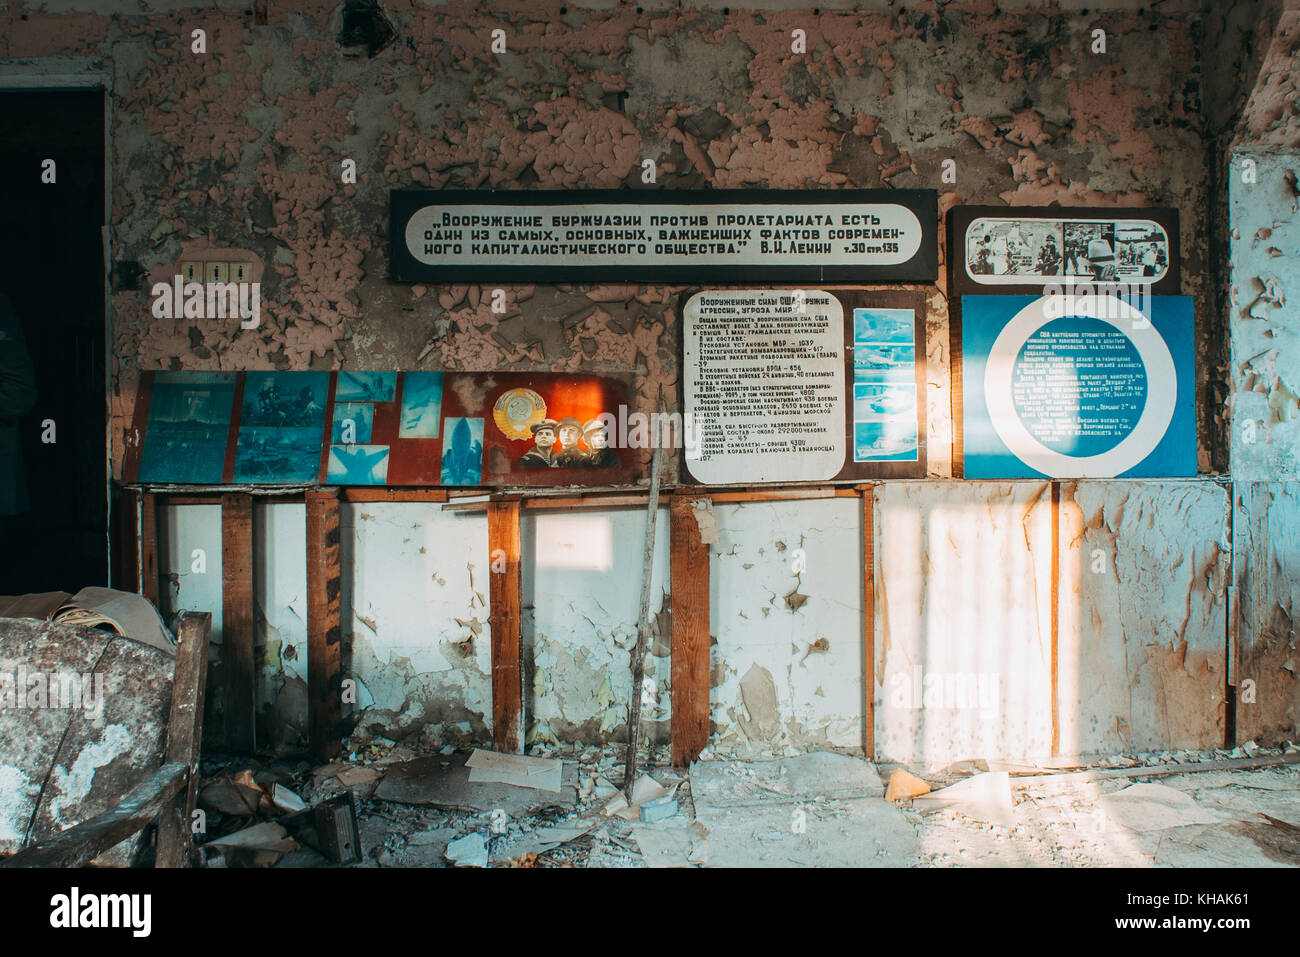 Leftover artwork and propaganda inside a secret military radar station in Chernobyl, Ukraine - Stock Image